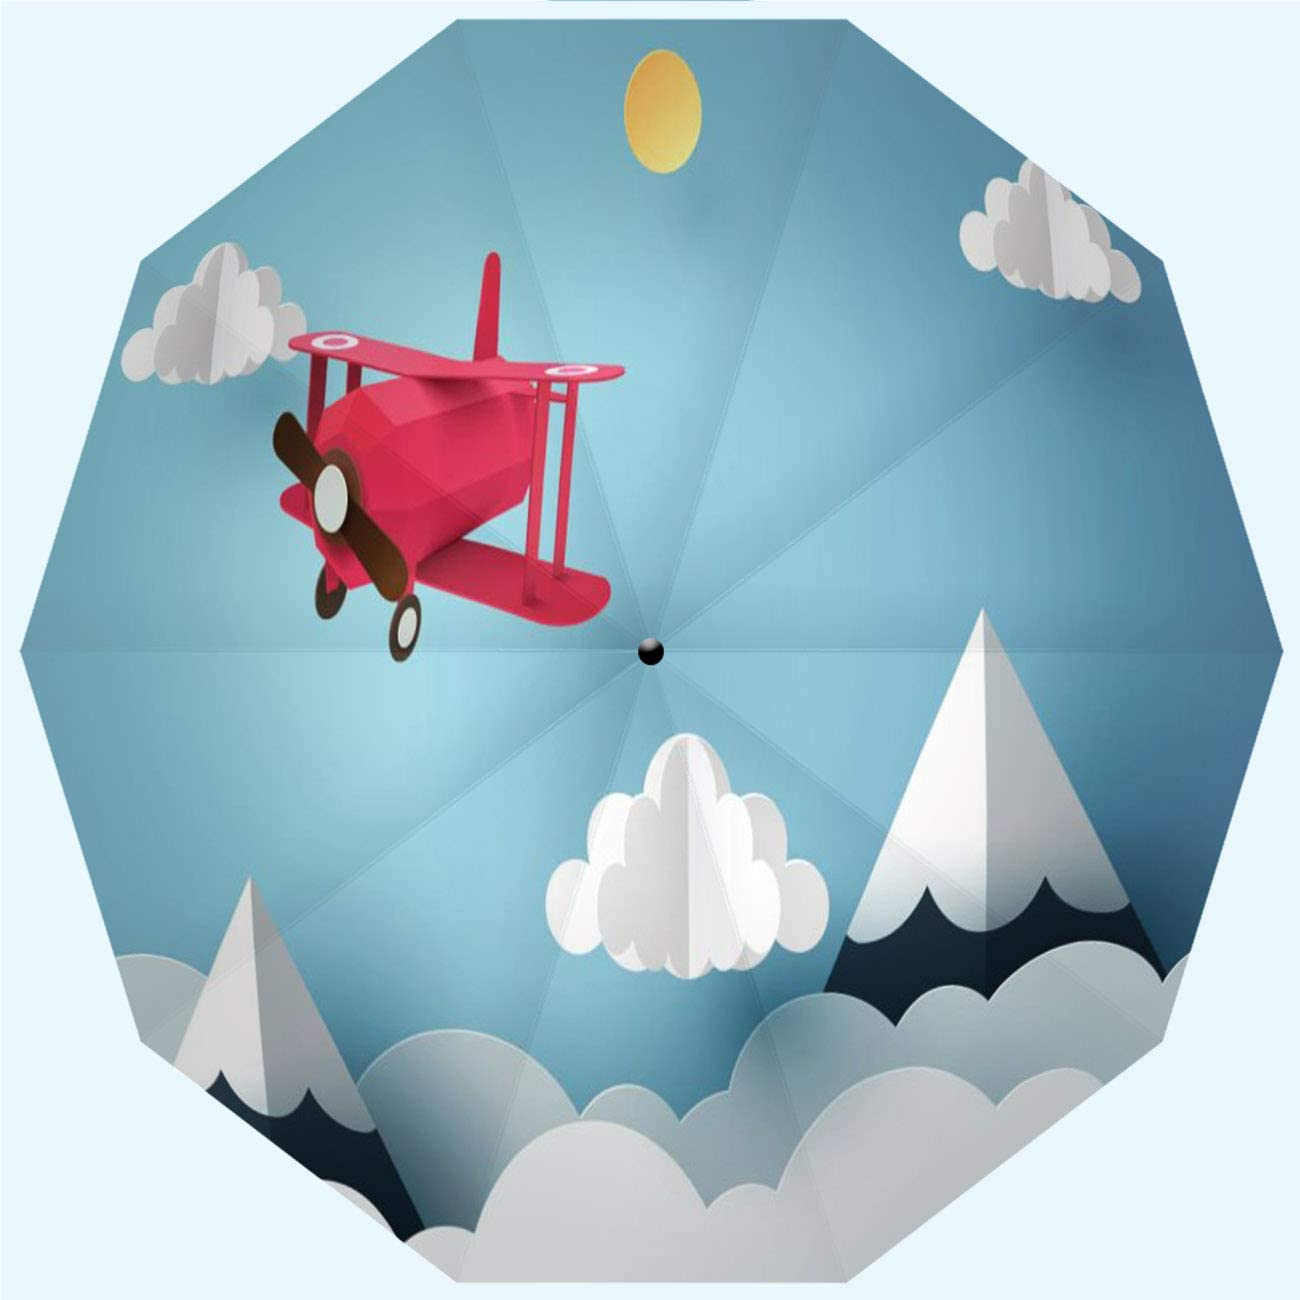 10 Ribs 42 Inches Automatic Opening and Closing,Paper Art of Pink Plane Flying in The Sky Origami and Travel Day Concept,Windproof RLDSESS Art Compact Patio Umbrella Ladies Rainproof Men